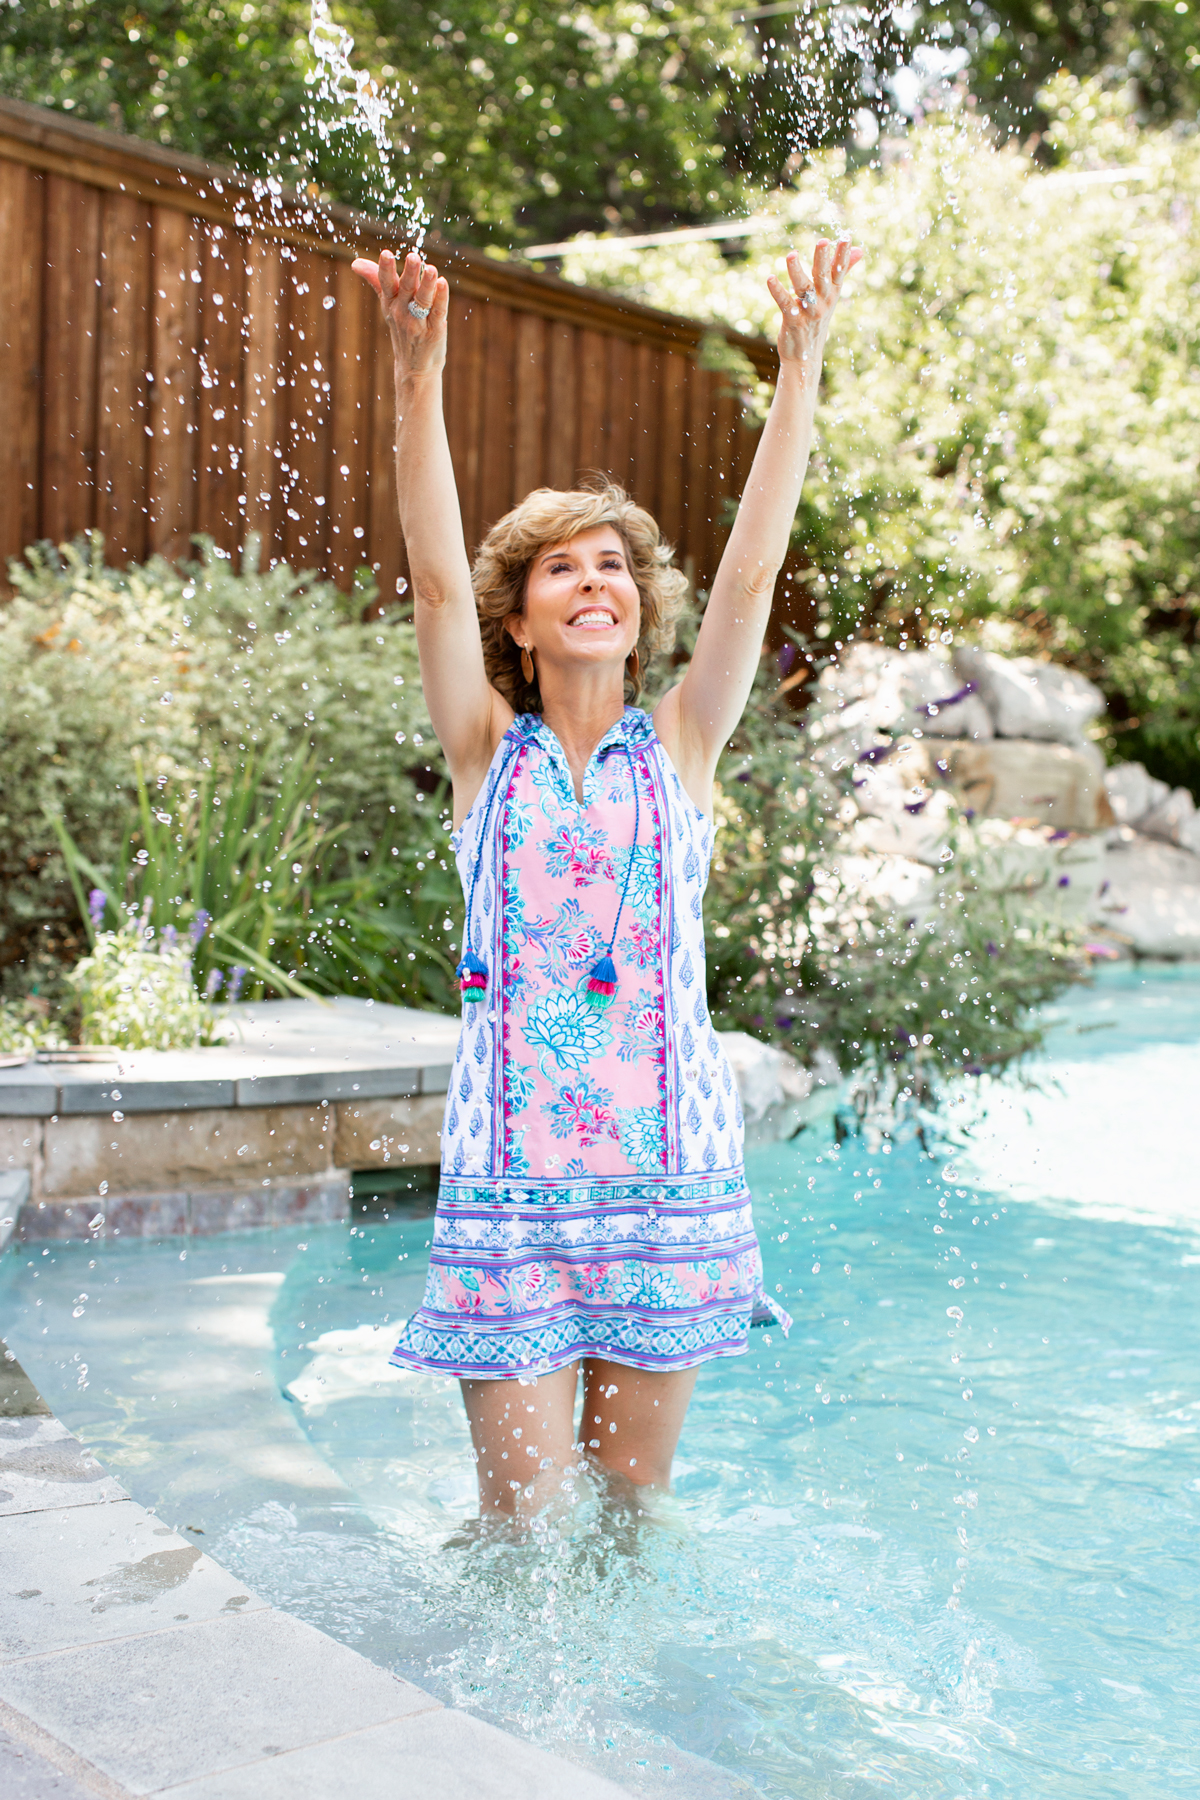 woman standing in a pool and throwing water into the air